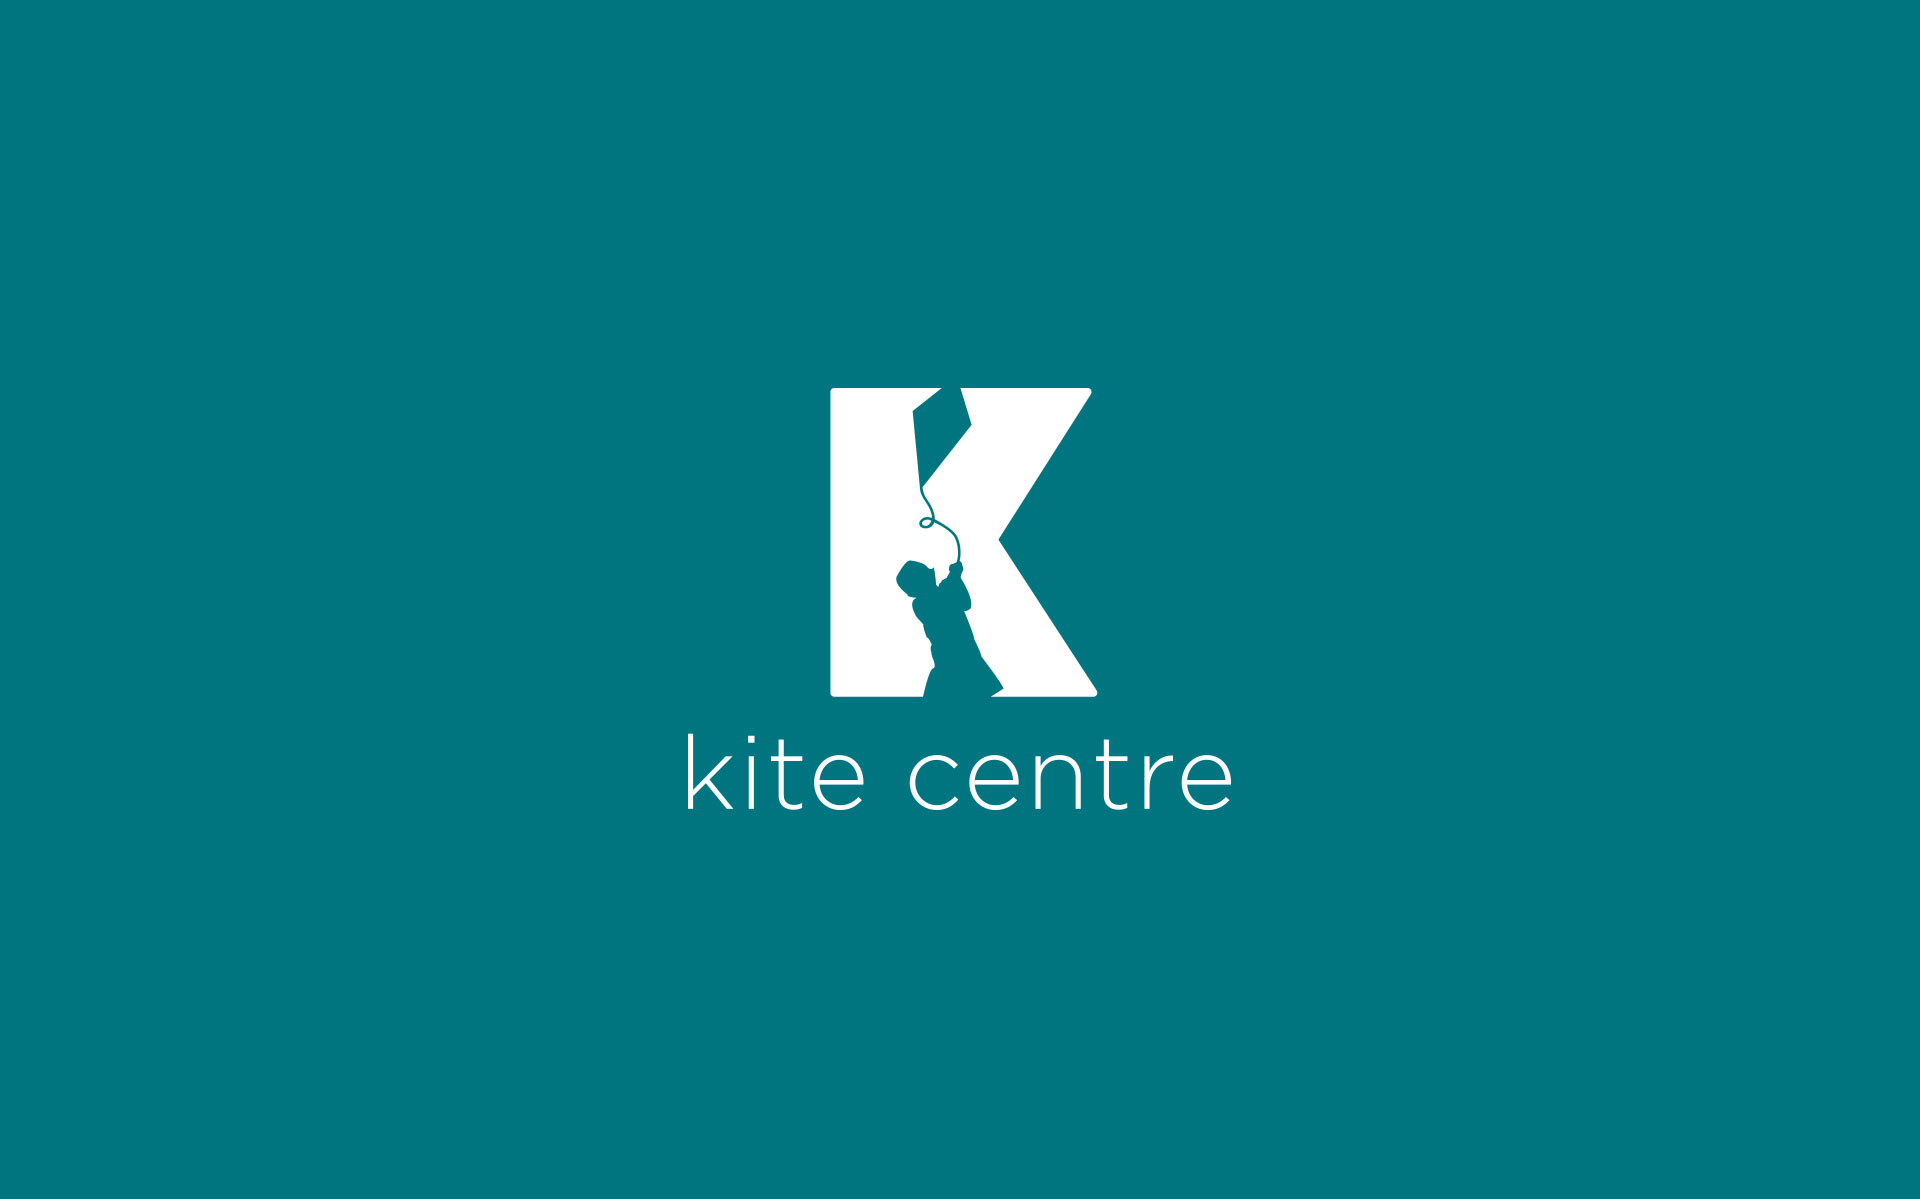 Kite Centre Branding & Marketing designed by Amy at Yellow Sunday